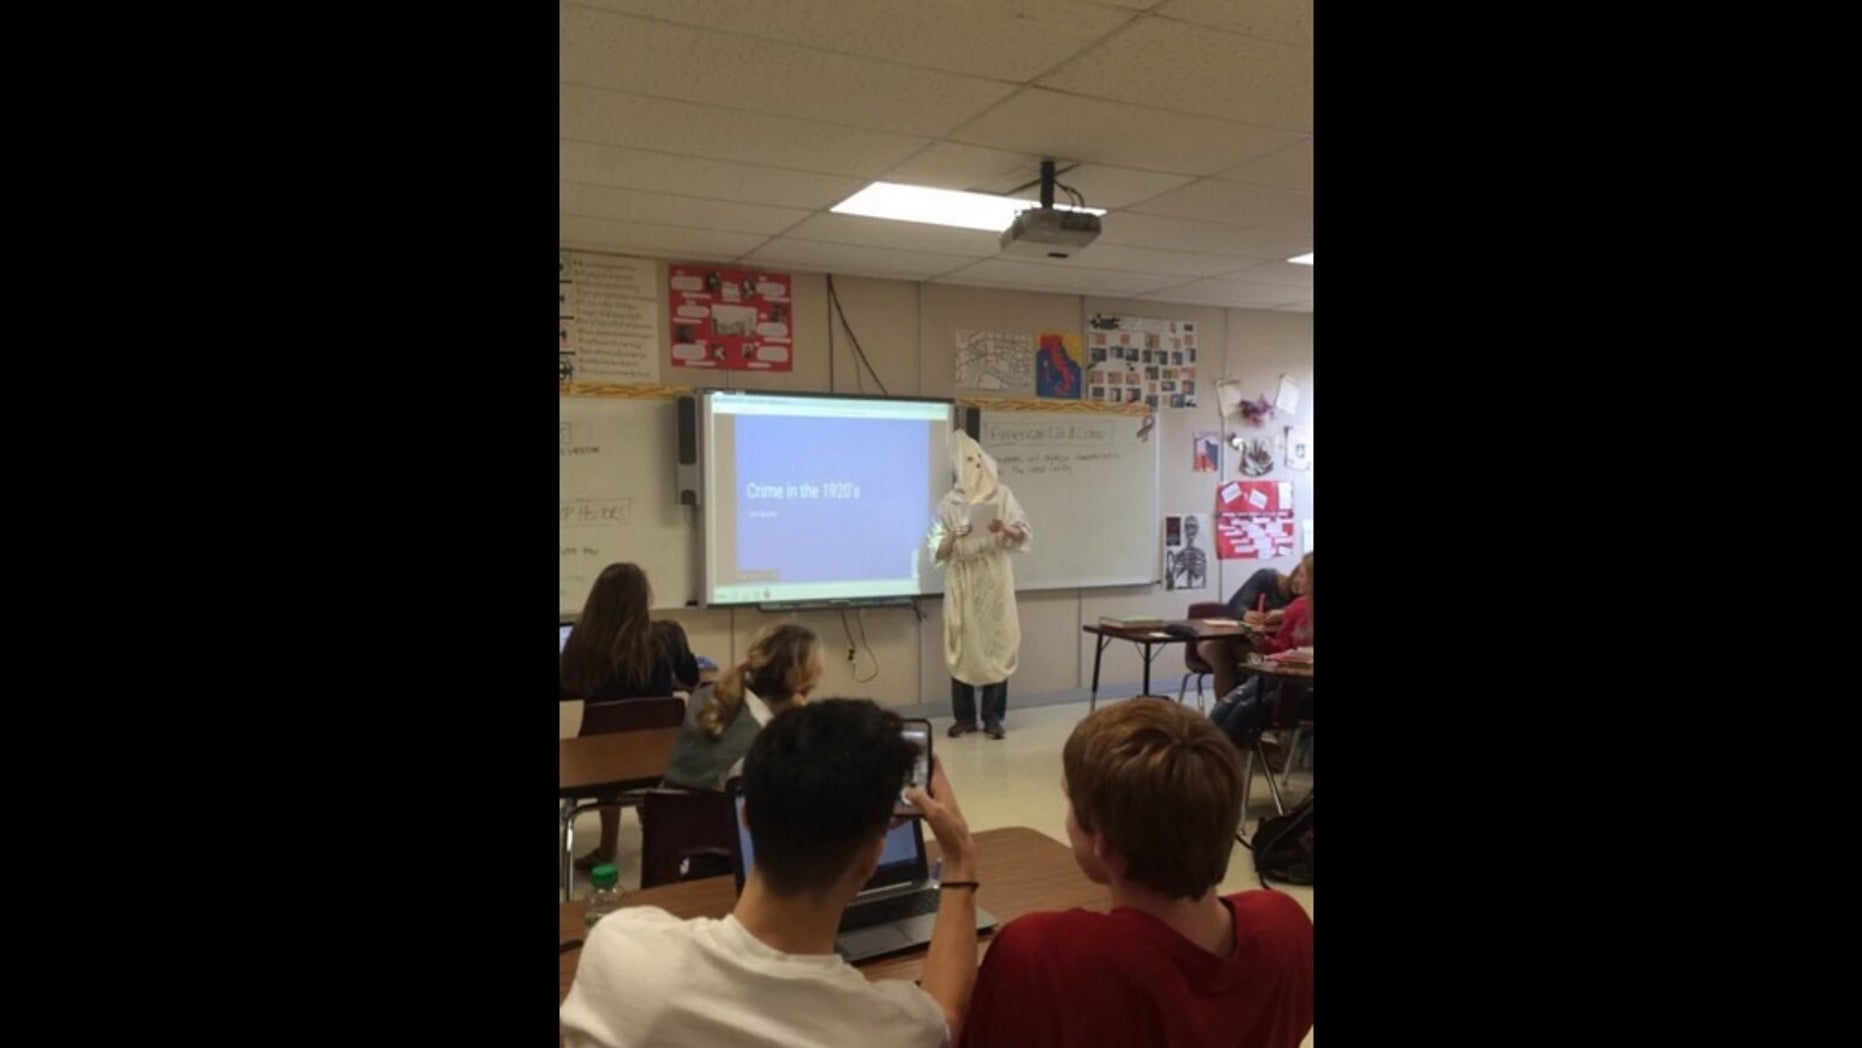 This student's choice of attire for a recent class presentation has angered some students and parents at Westosha Central High School in Salem, Wisconsin.